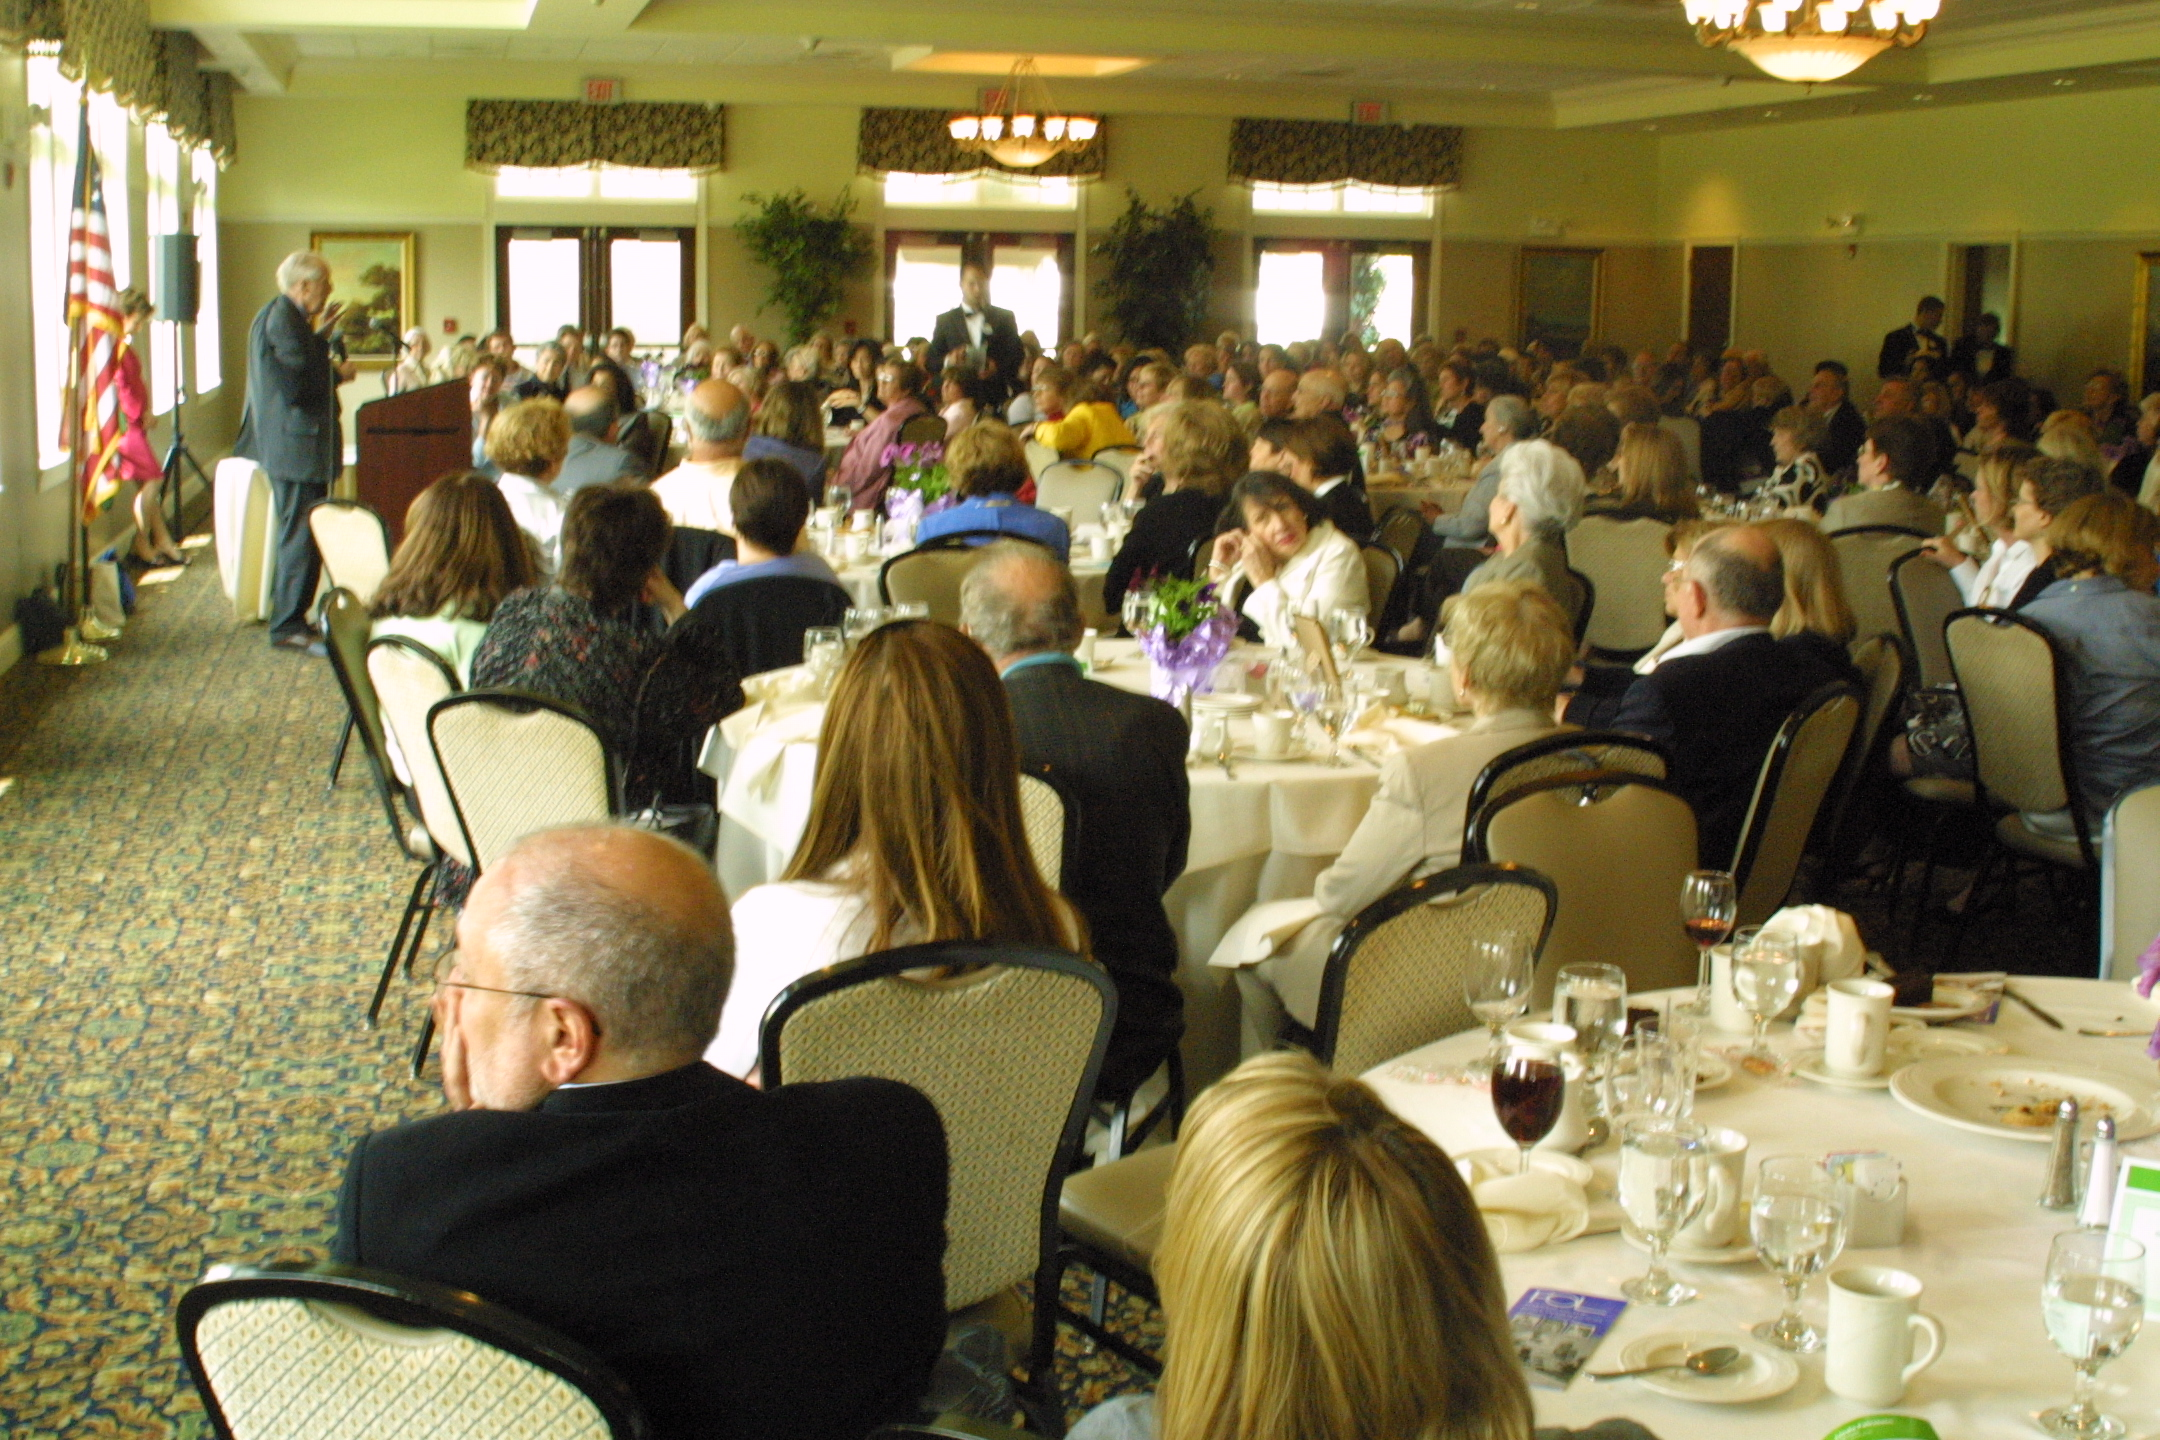 More than 220 attendees filled the dining room at the Clubhouse at Harbor Links.